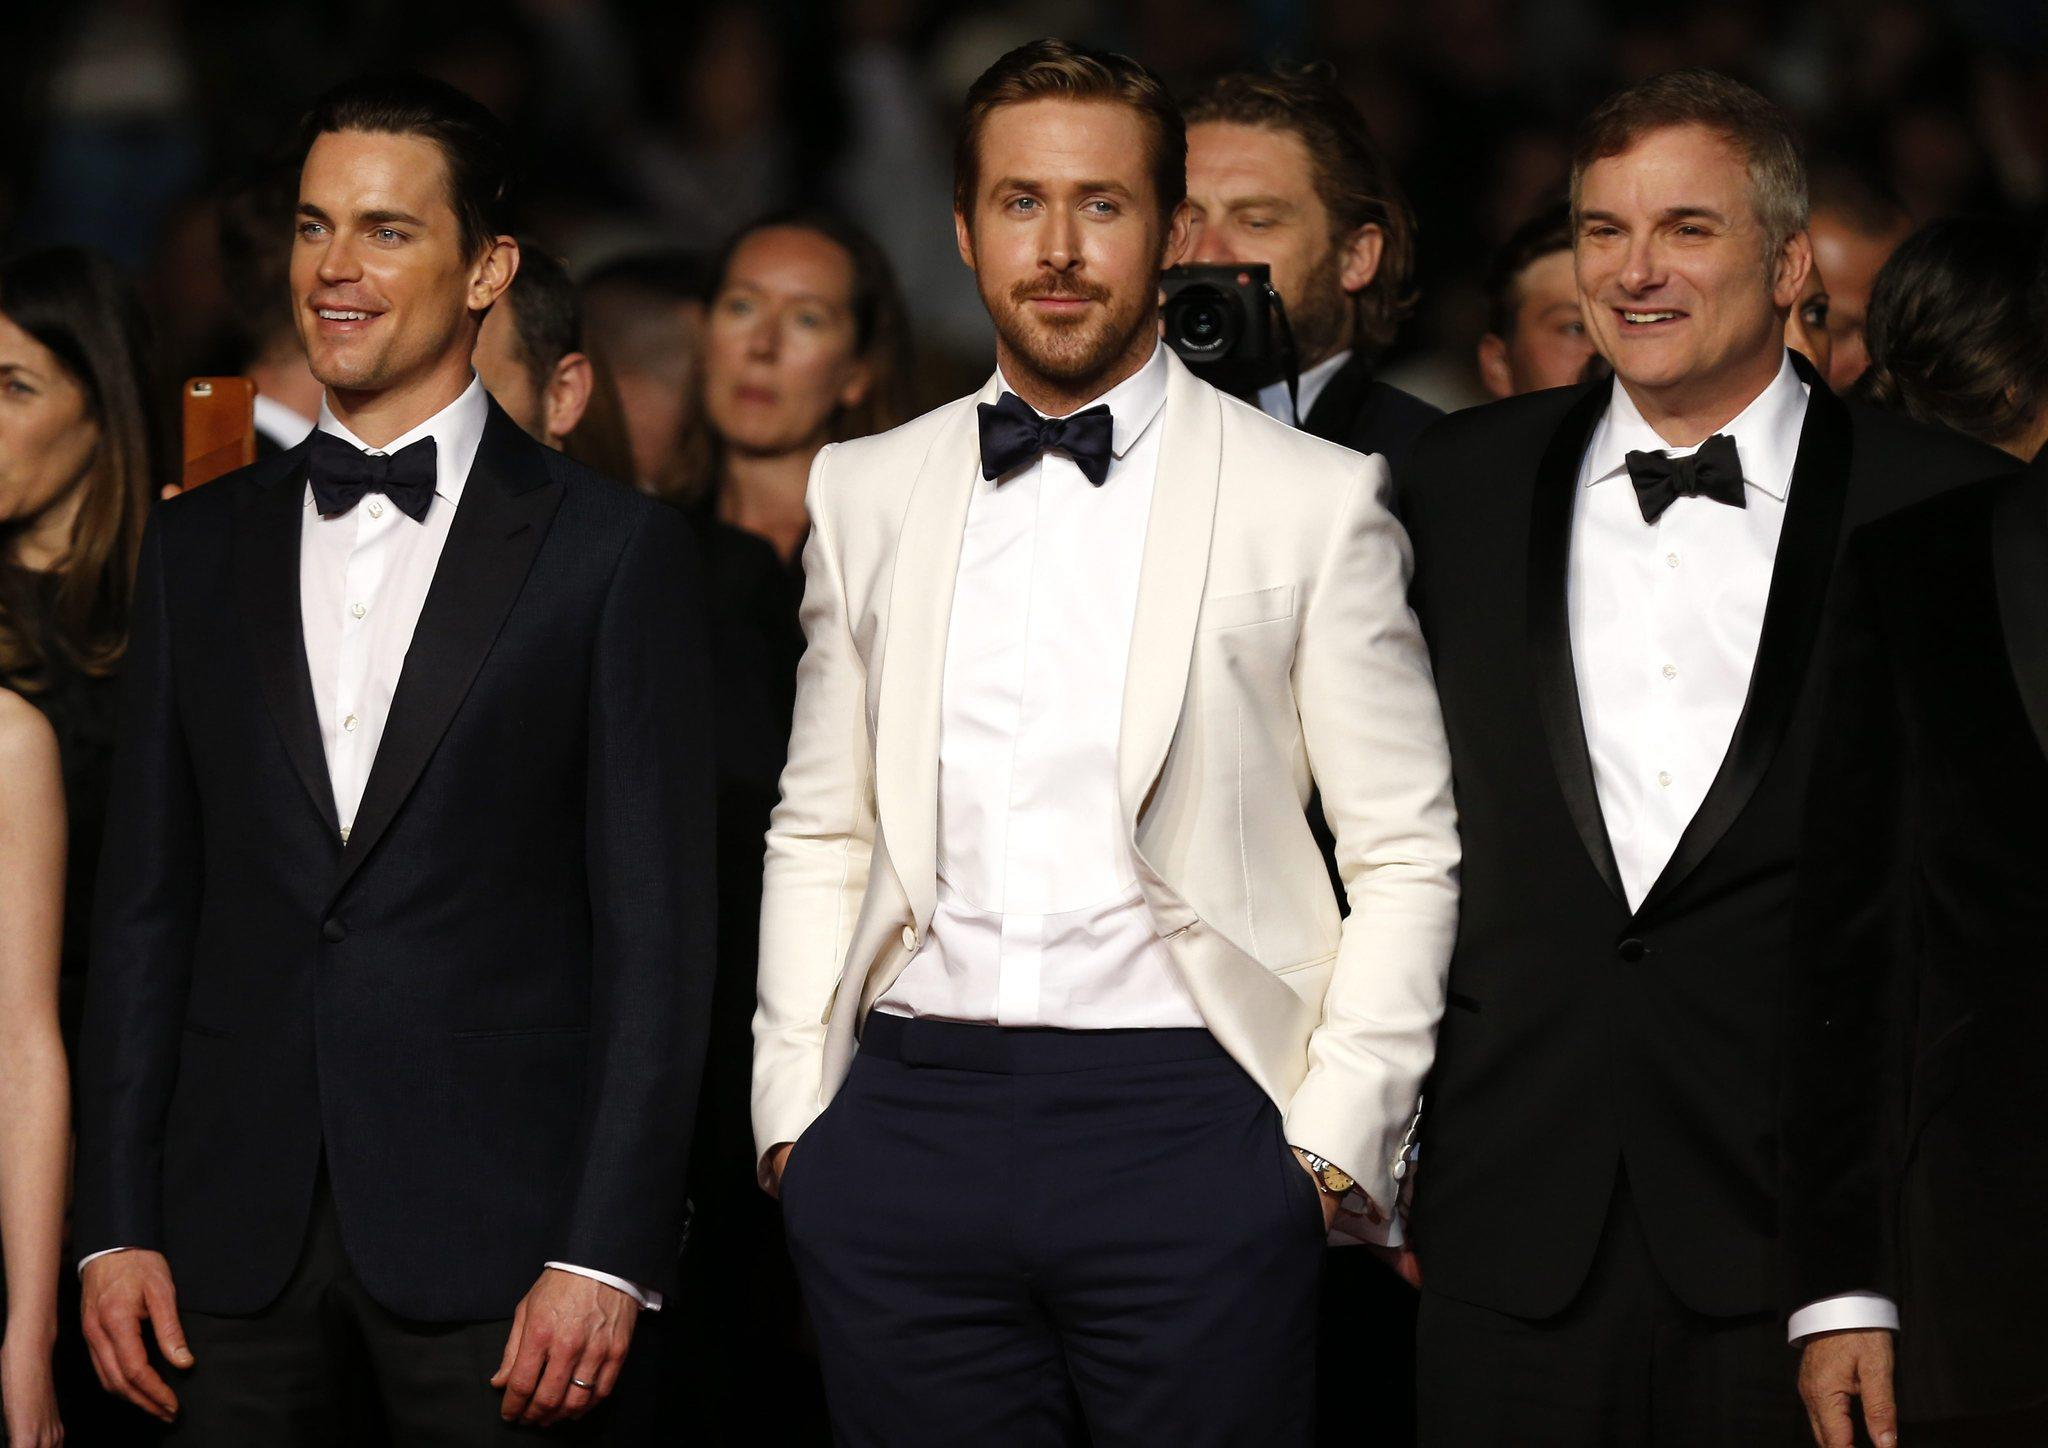 "Actors Matt Bomer, left, and Ryan Gosling and director Shane Black arrive for the screening of ""The Nice Guys"" at the Cannes Film Festival. (Ian Langsdon / European Pressphoto Agency)"